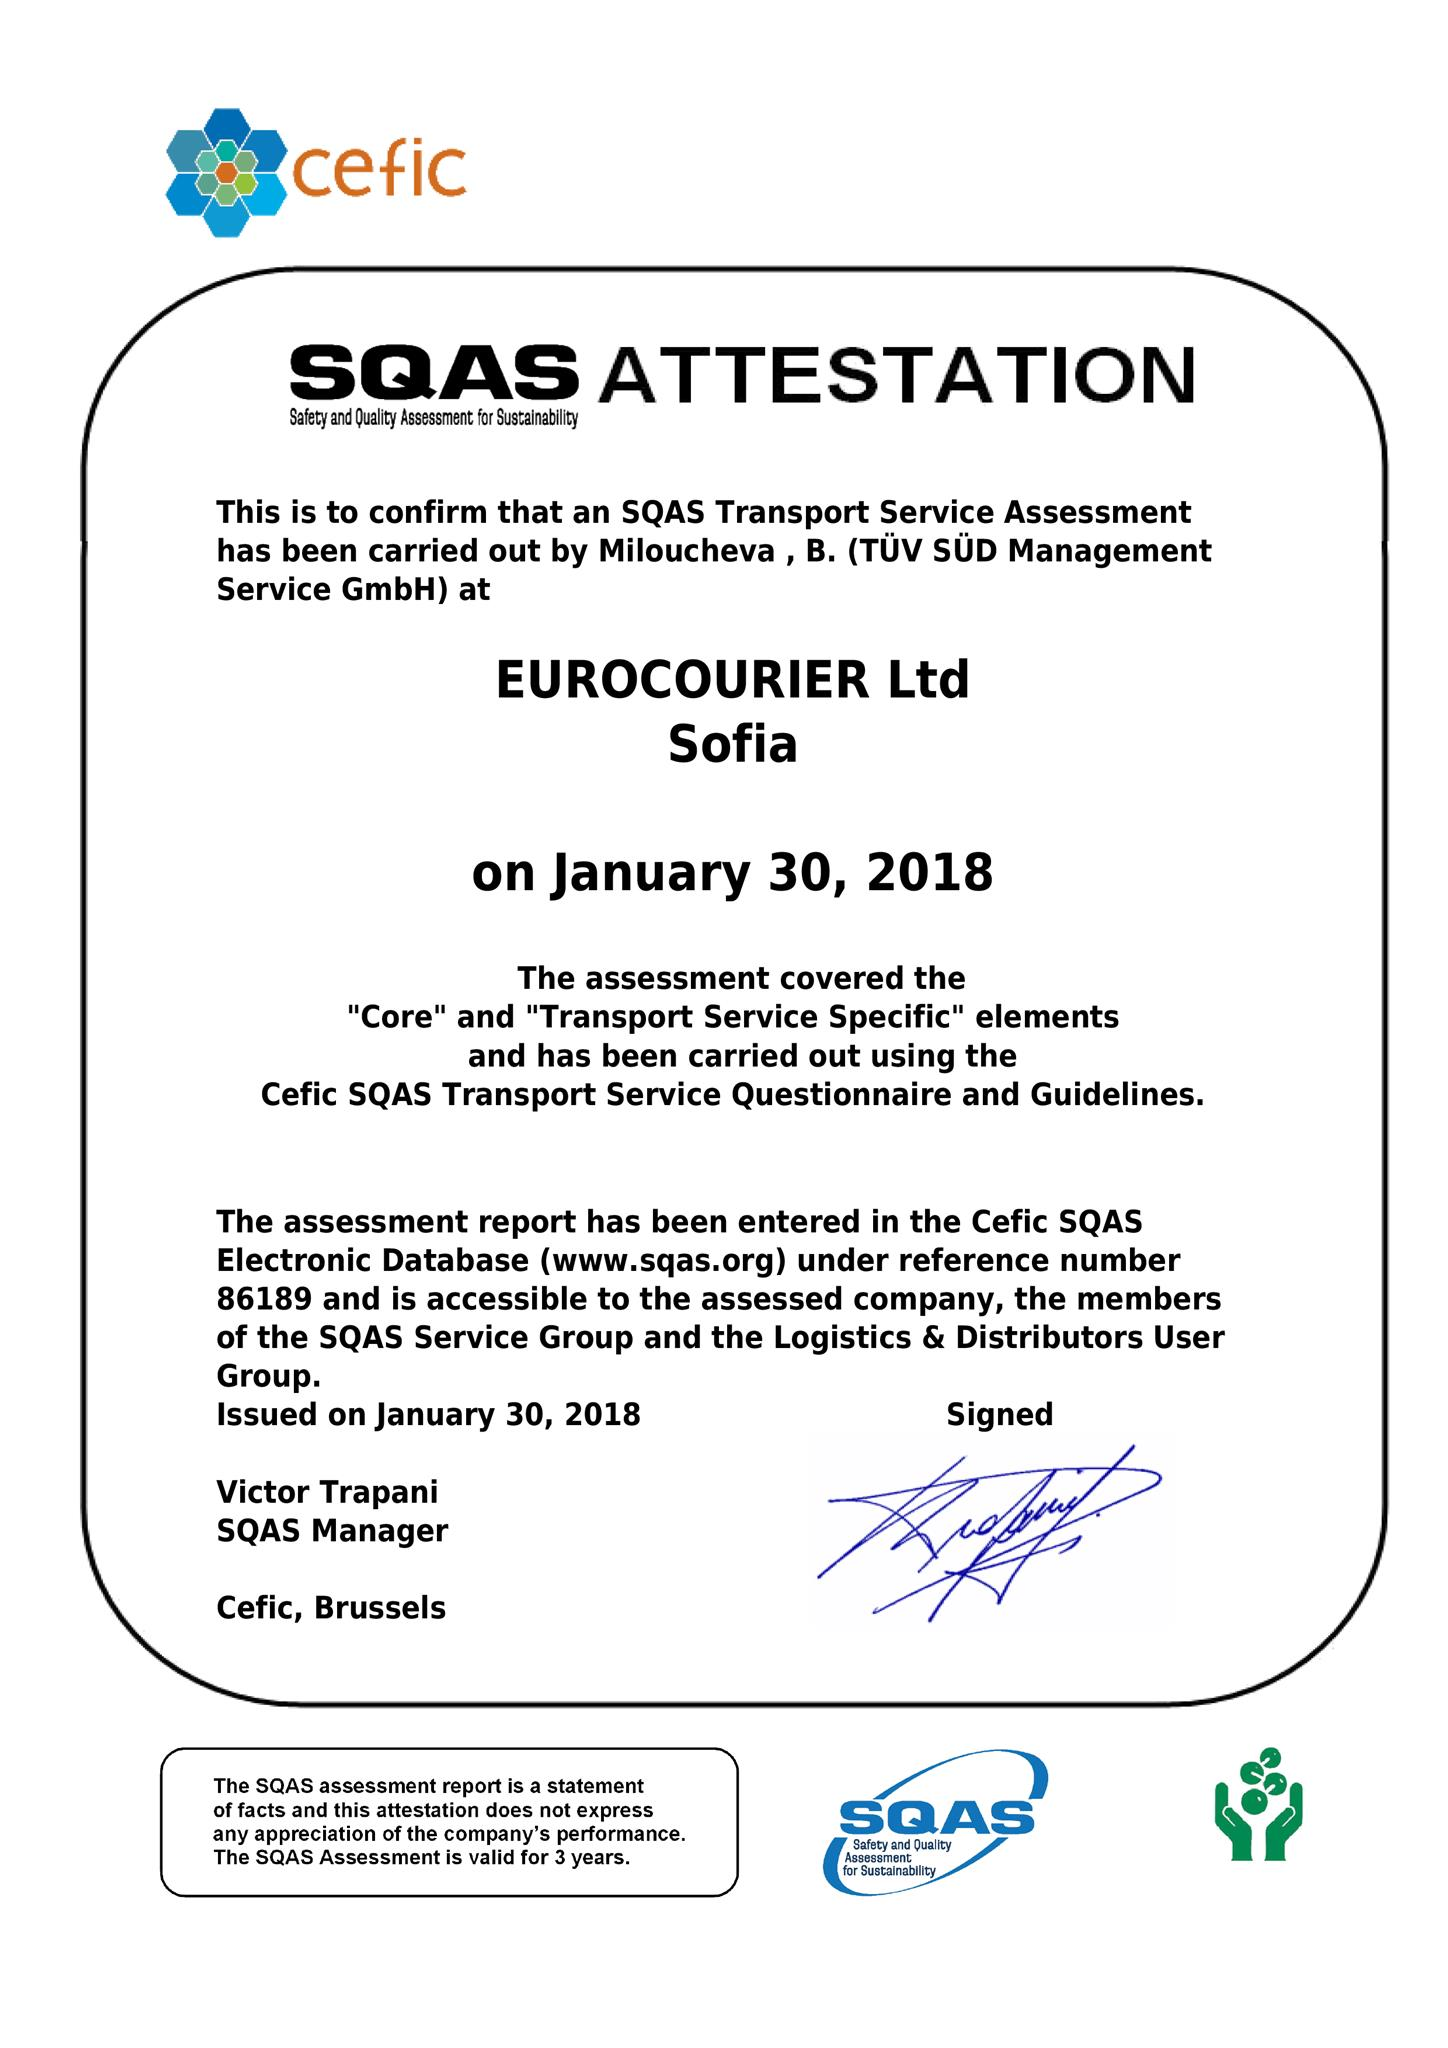 sqas_attestation_eurocourier